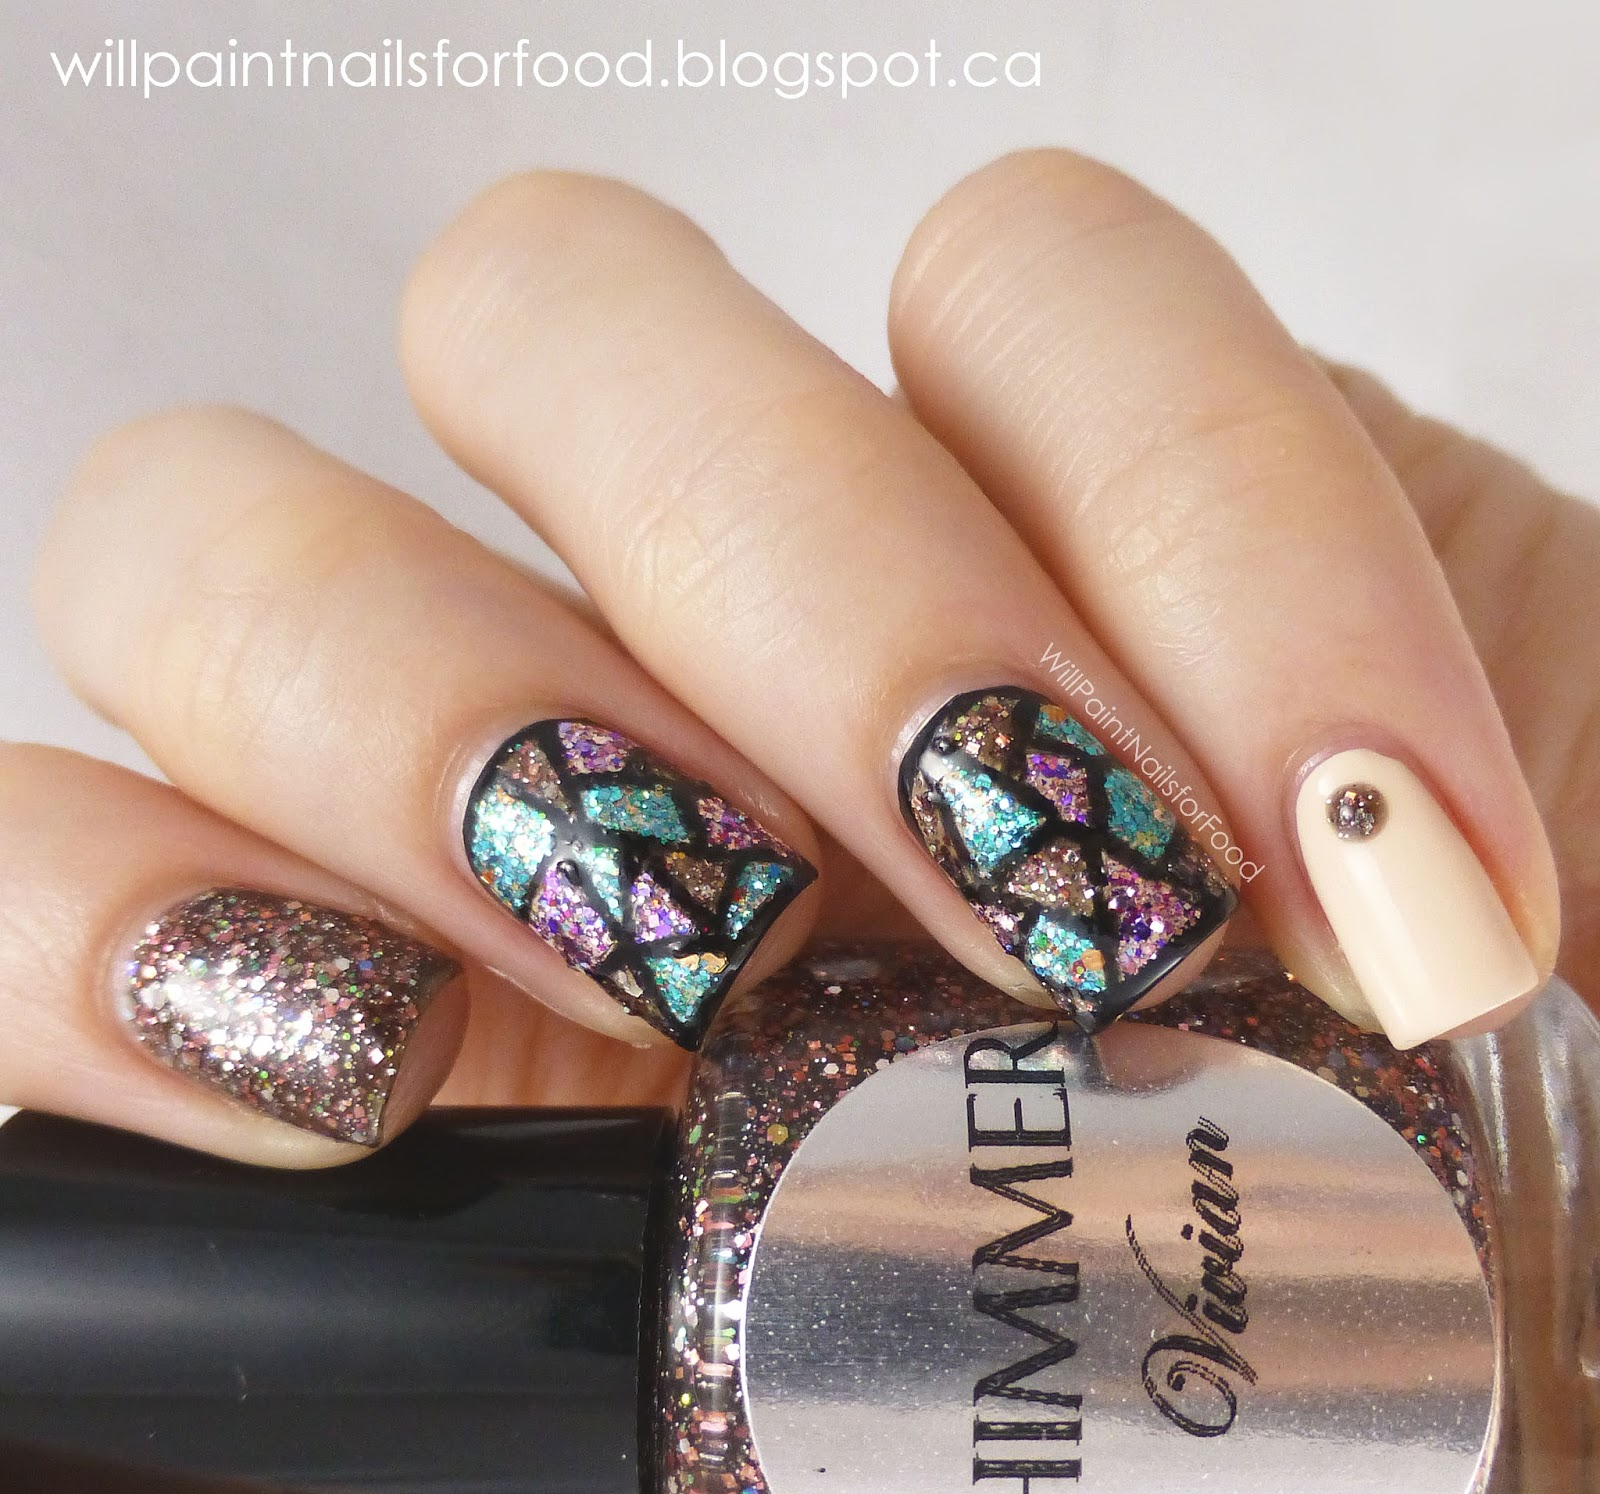 Nail Polish Art On Glass: Will Paint Nails For Food: Shimmer Polish Vivian Stained